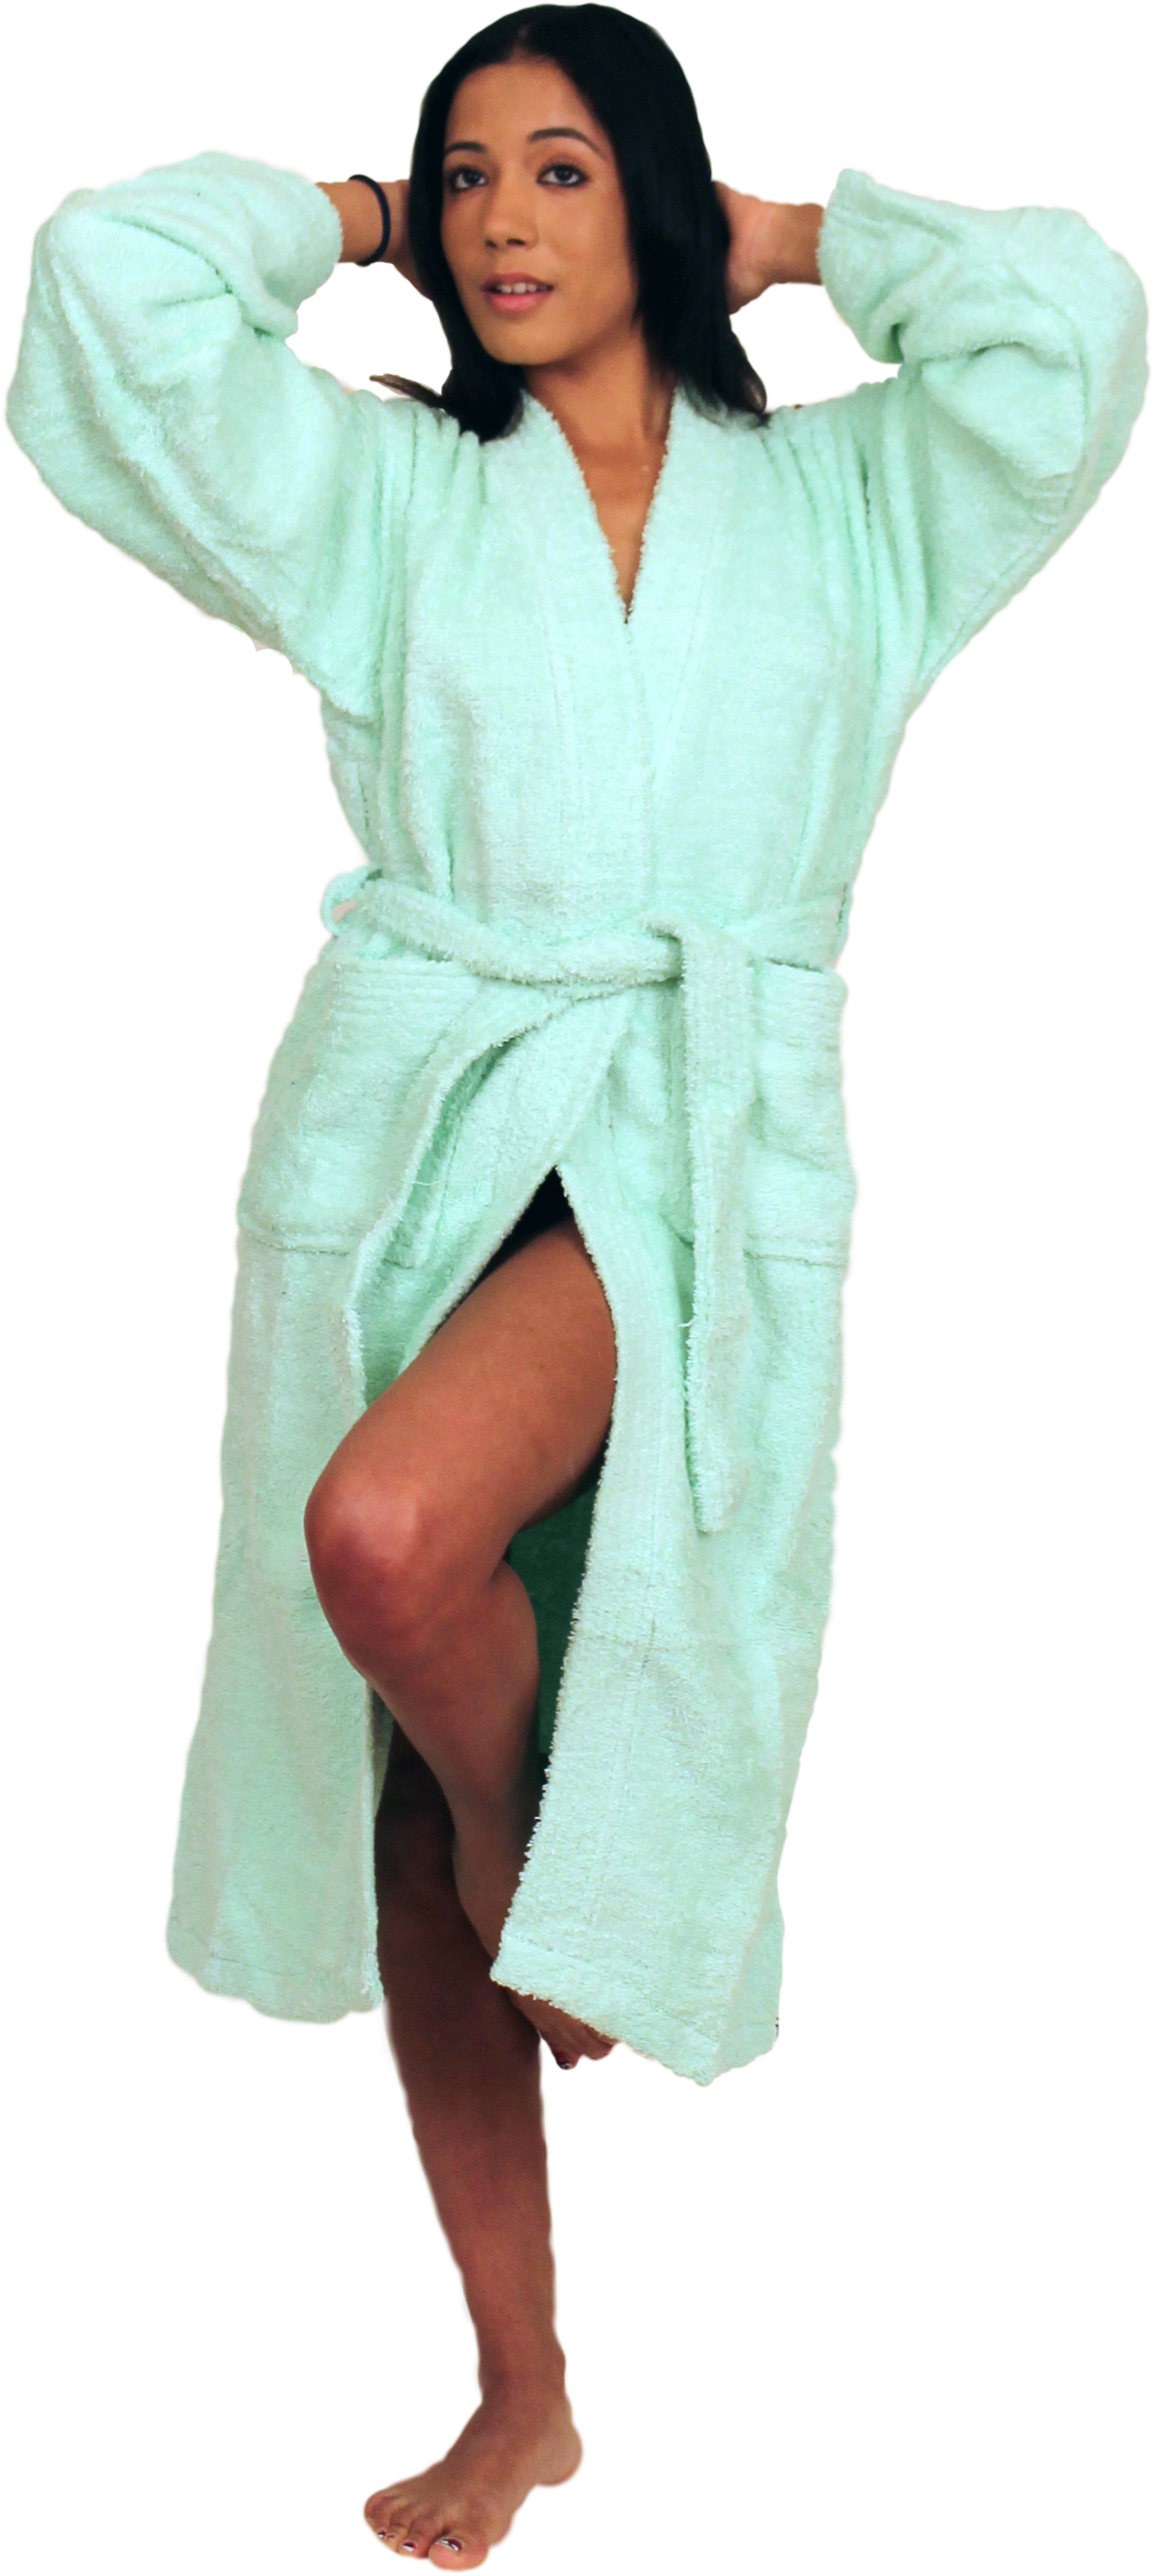 Men's and Women's Terry Cloth Kimono Robe  100% cotton - $29.99 Colors: Navy-L/XL Navy-S/M Pink-L/XL Pink-S/M Teal-L/XL Teal-S/M White-L/XL White-S/M. Sizes: